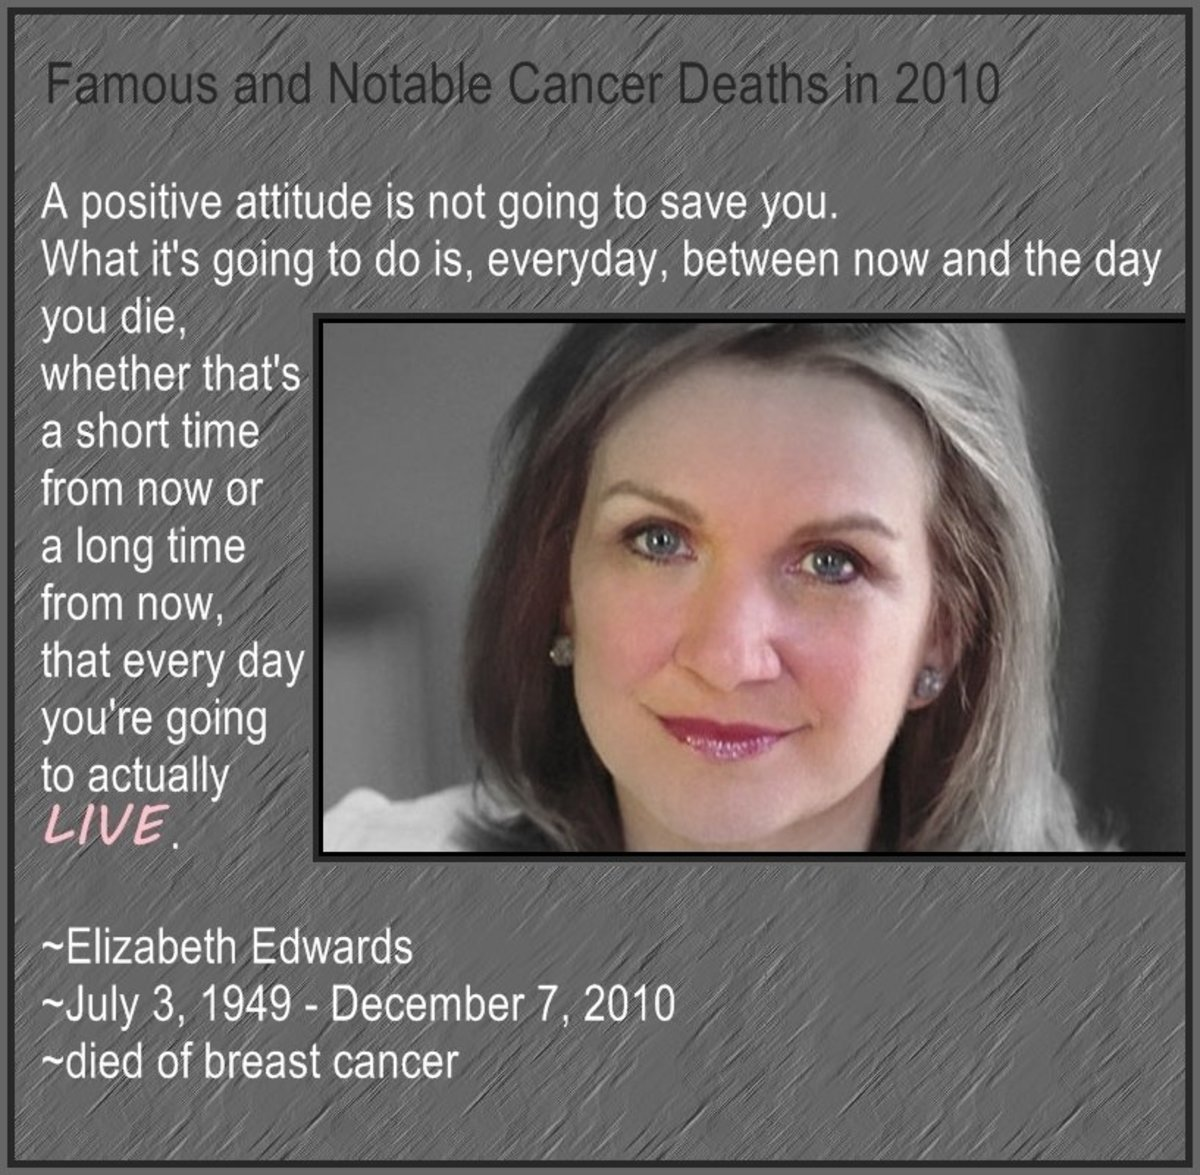 Famous and Notable Cancer Deaths in 2010